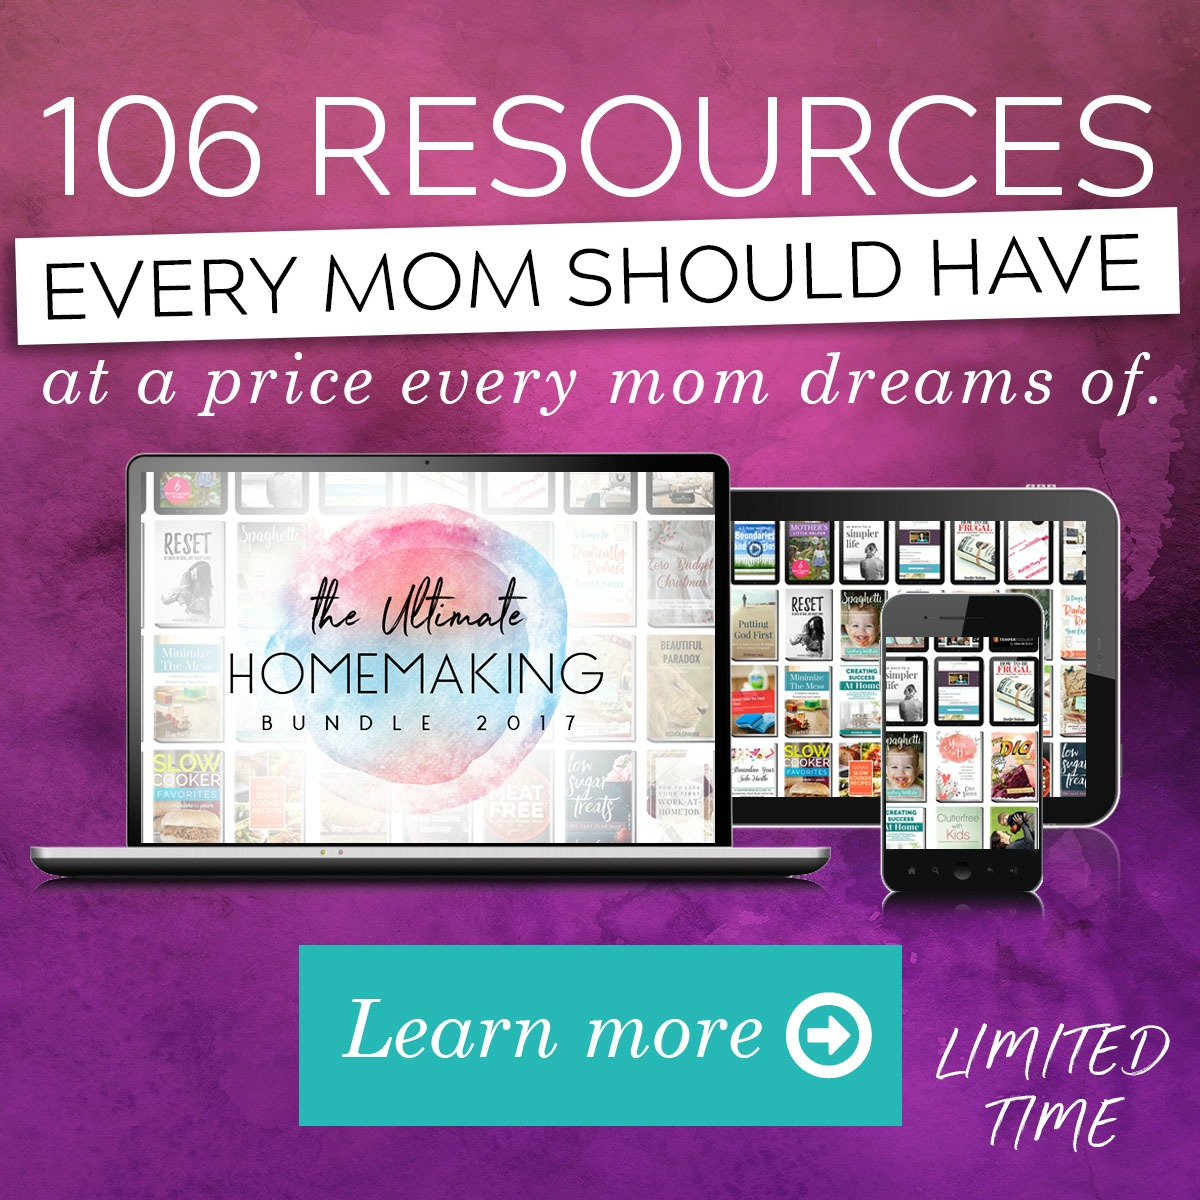 The Ultimate Homemaking Bundle has over 100 resources to help you improve your home and life, including printables, eBooks and eCourses that is worth more than $2,000, but for over 97% off, but it's only available for a limited time {more information on Home Storage Solutions 101}